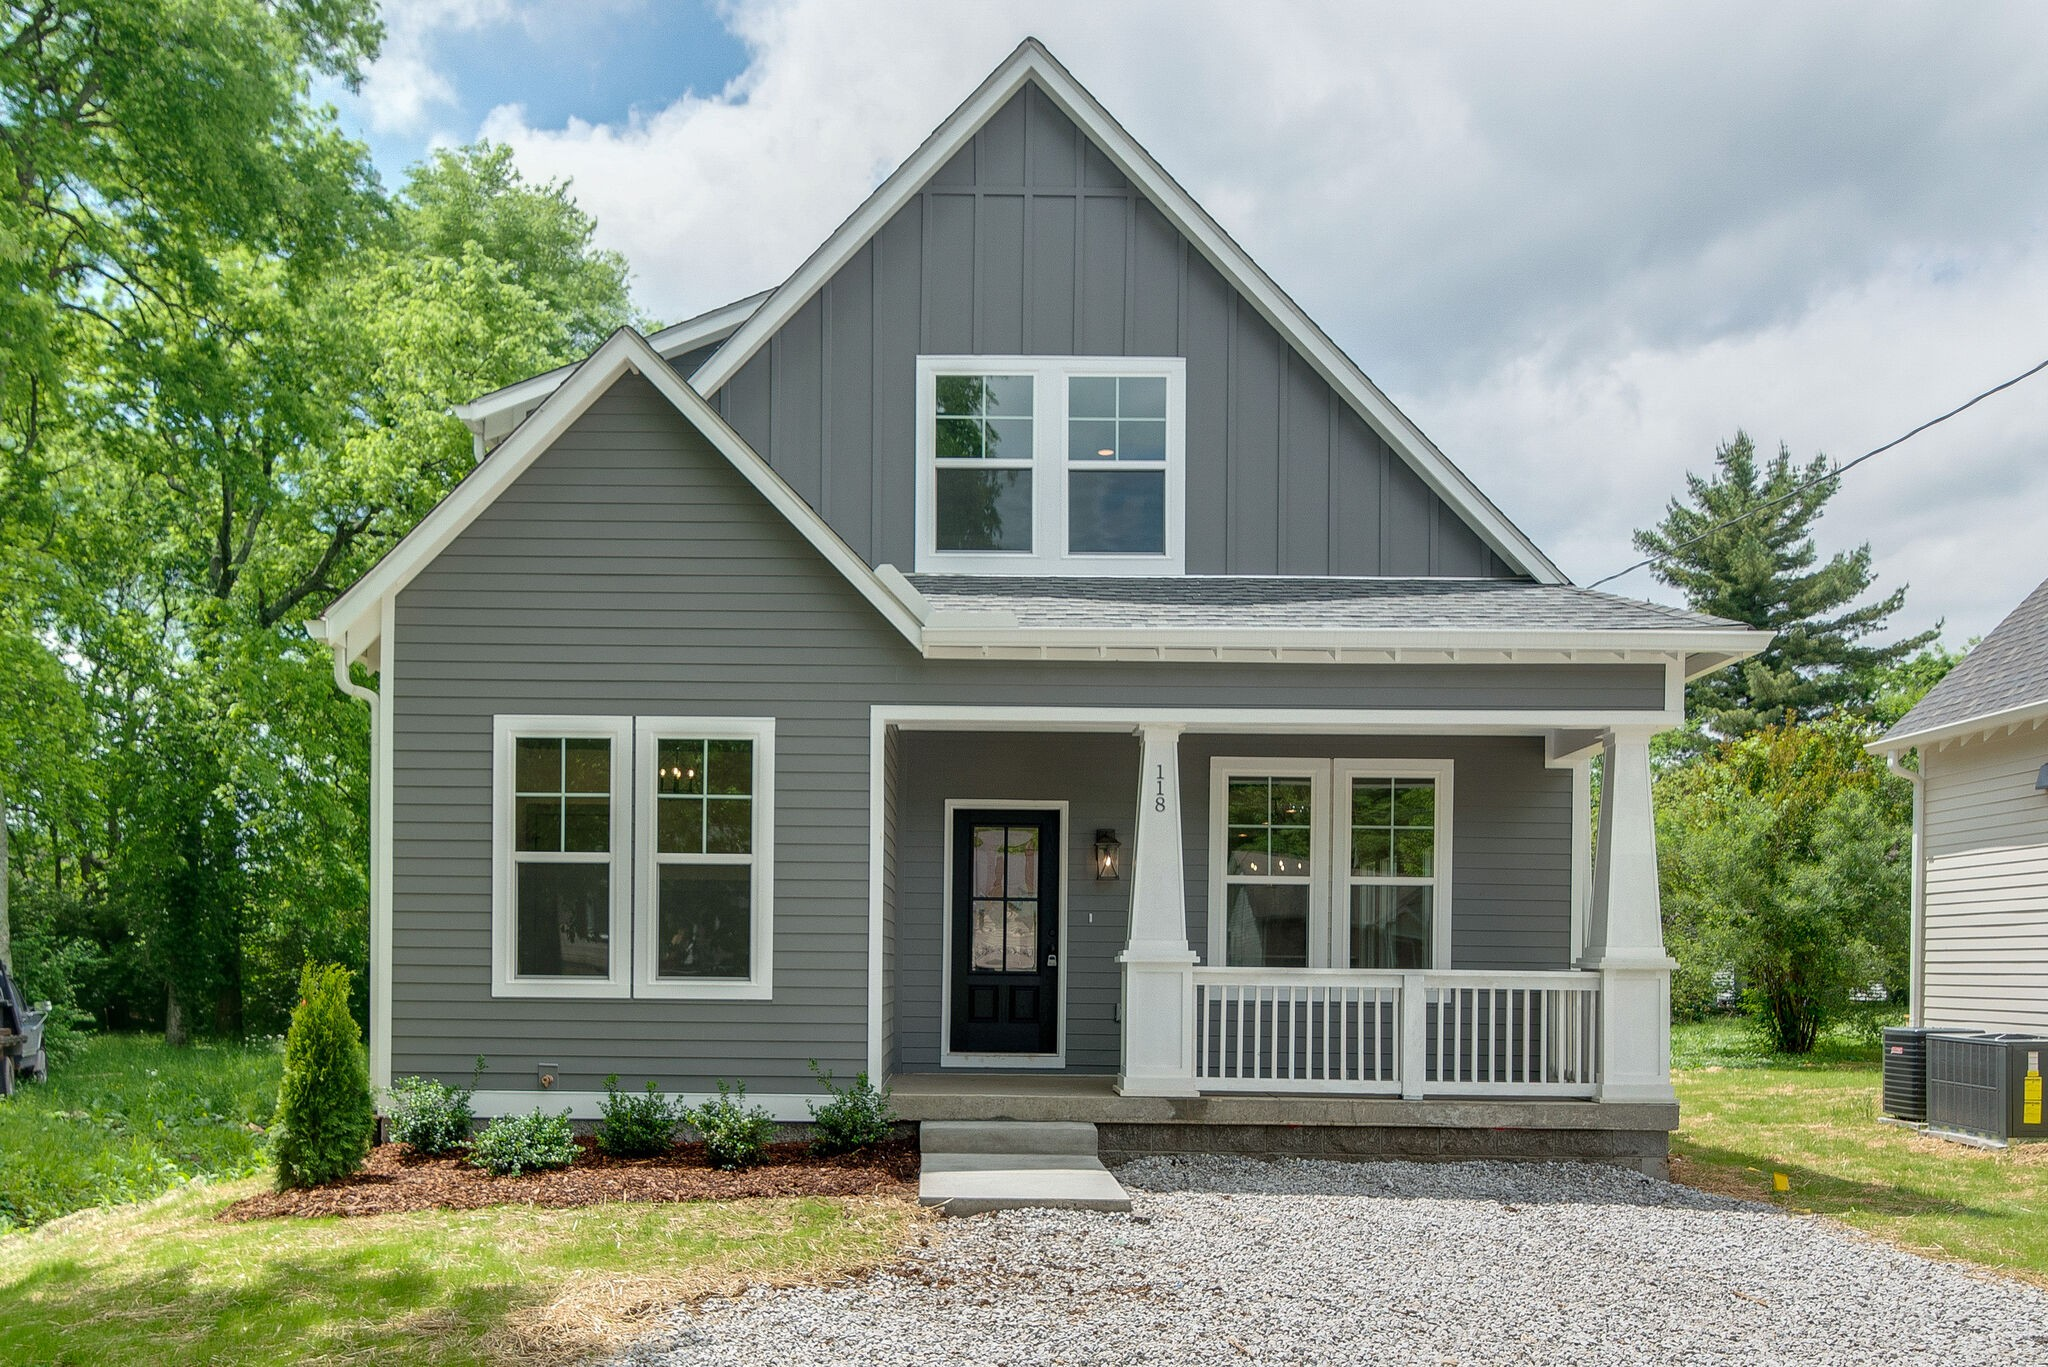 118 Lanier Dr Property Photo - Madison, TN real estate listing